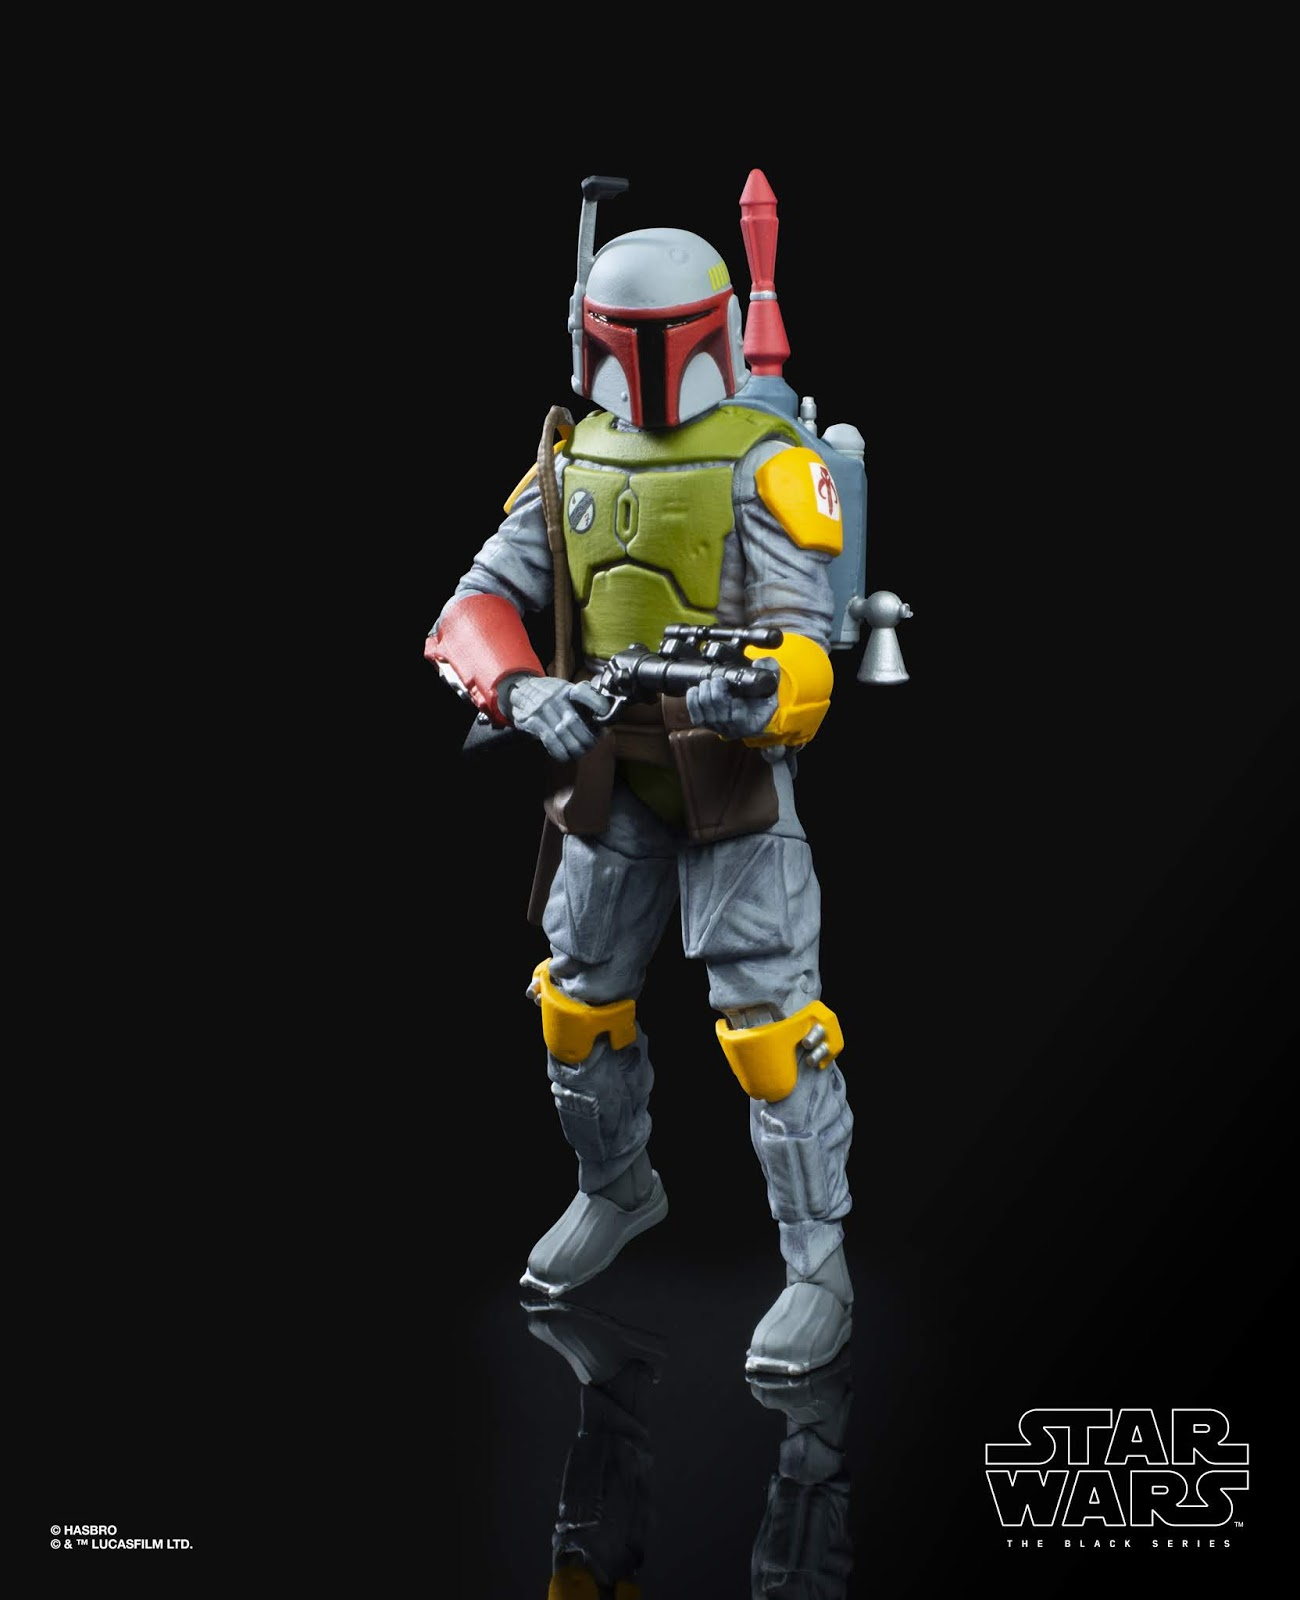 STAR WARS: THE BLACK SERIES 6-INCH BOBA FETT Figure